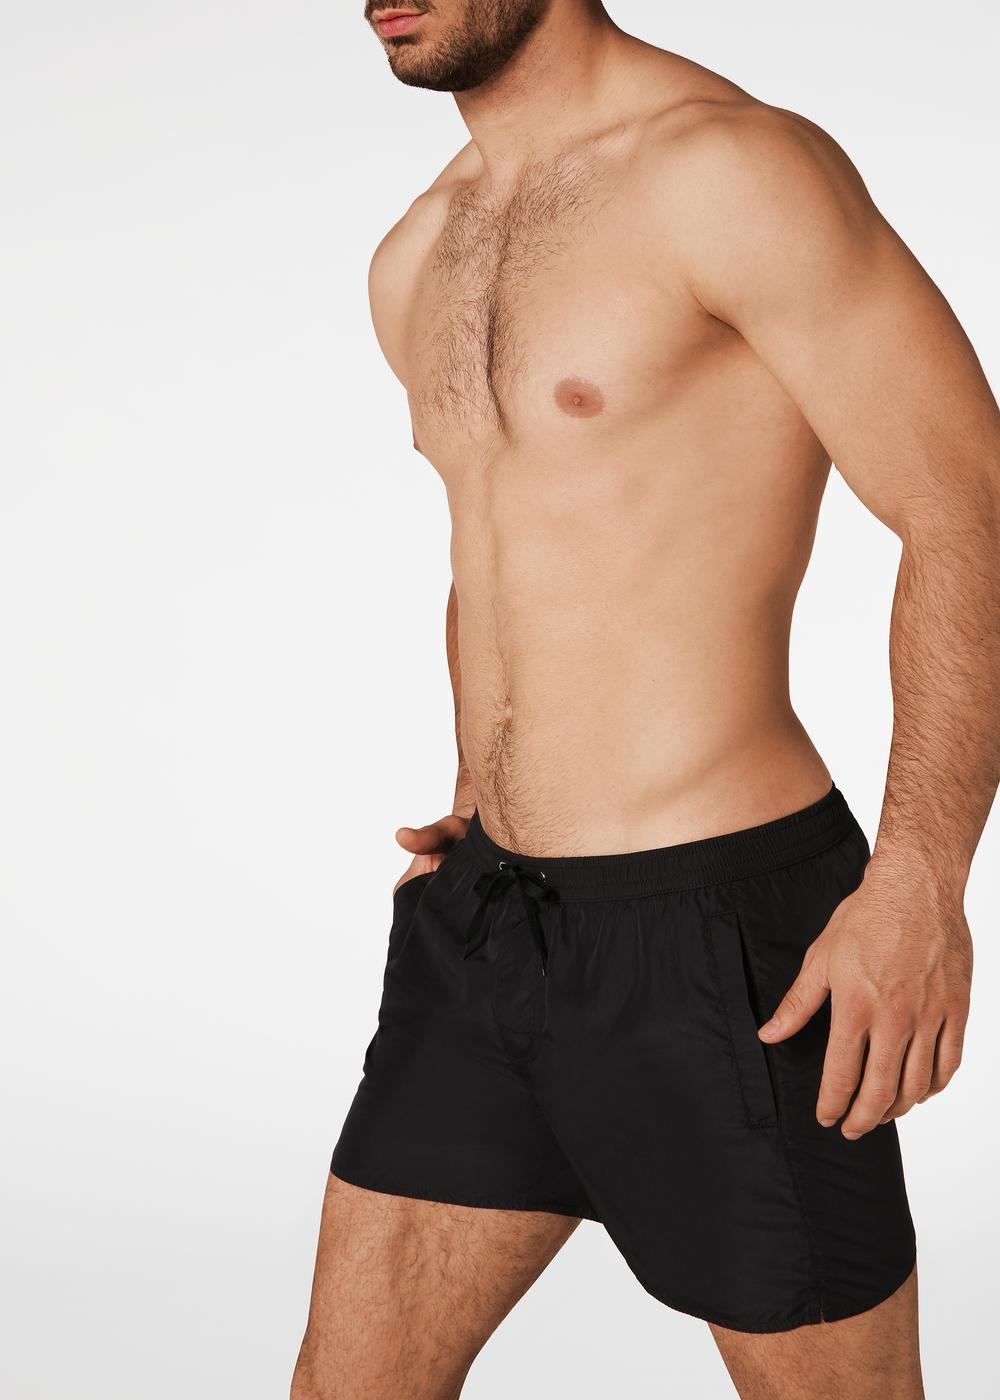 Men's Formentera swim trunks